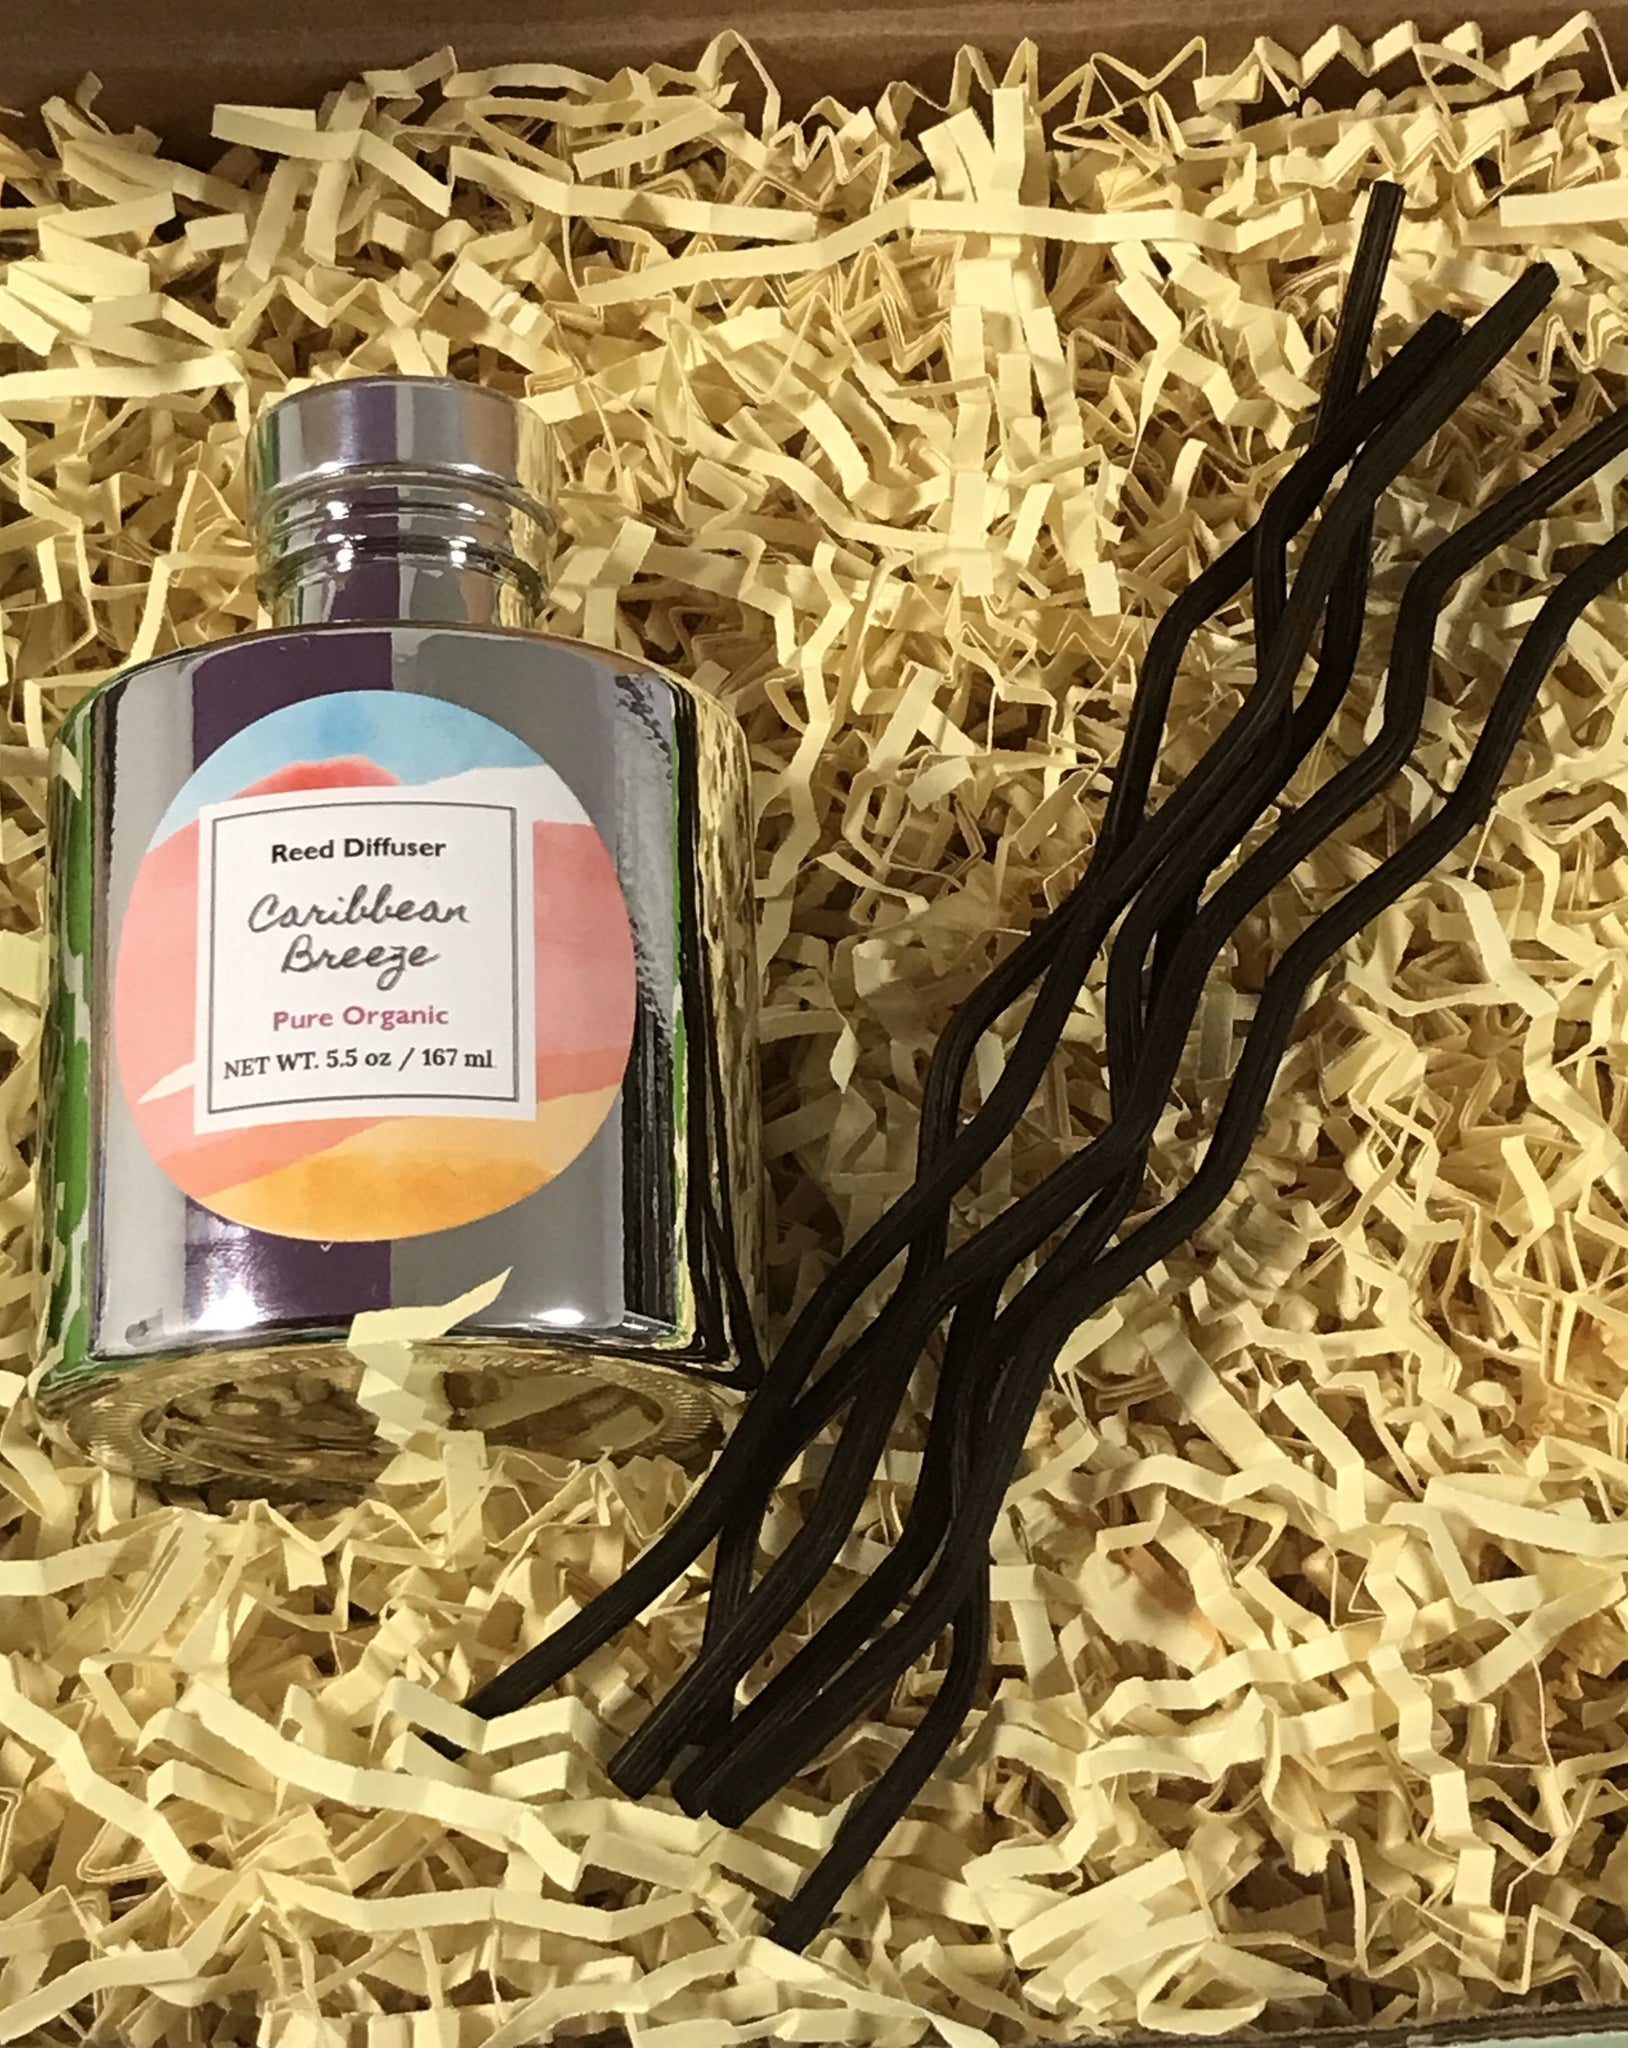 Reed Diffuser- Caribbean Breeze - Decorative & Aromatic - Handmade Ladey Bella